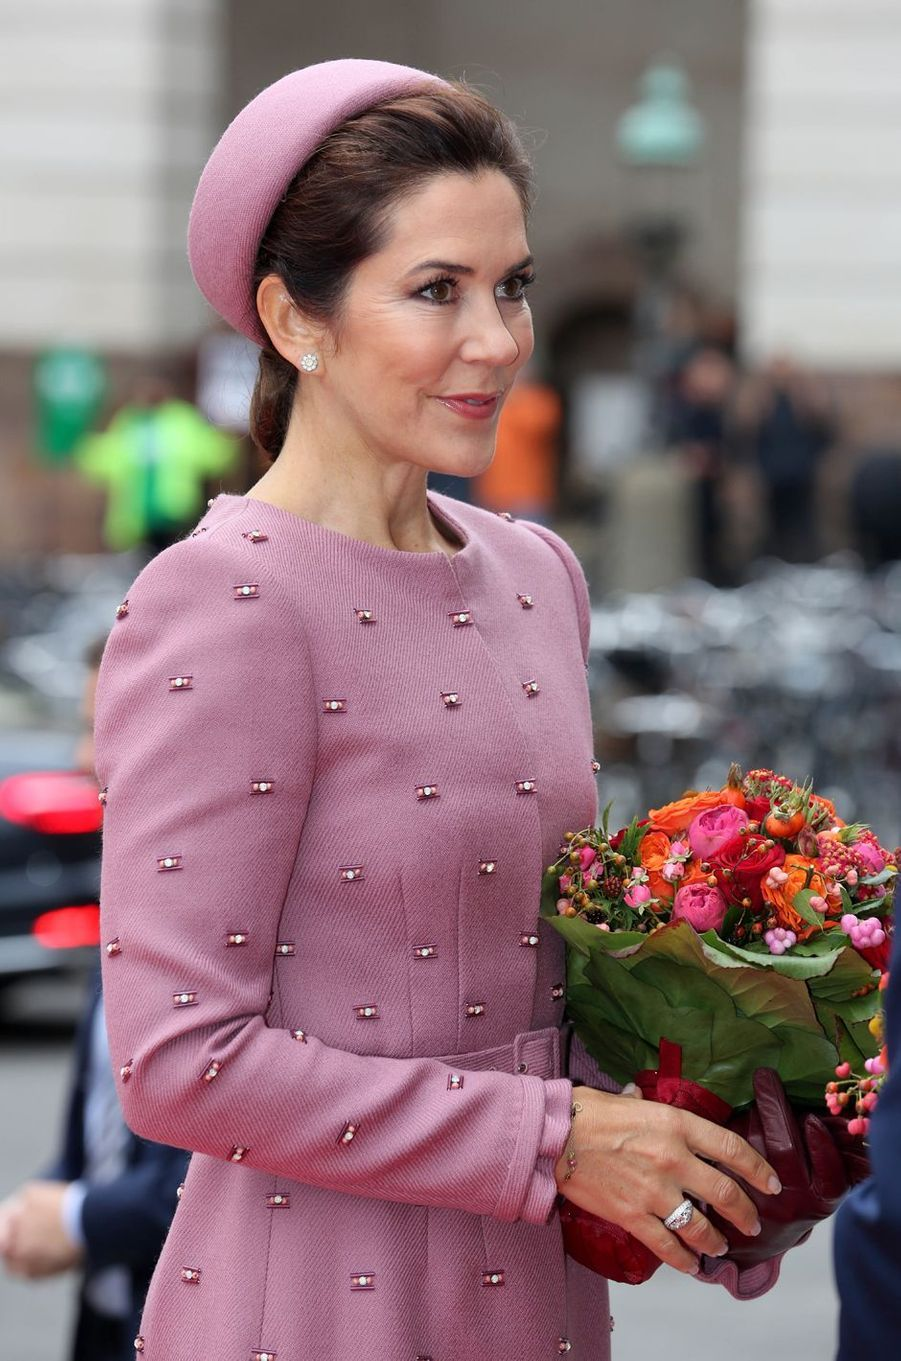 La princesse Mary de Danemark, à Copenhague le 1er octobre 2019